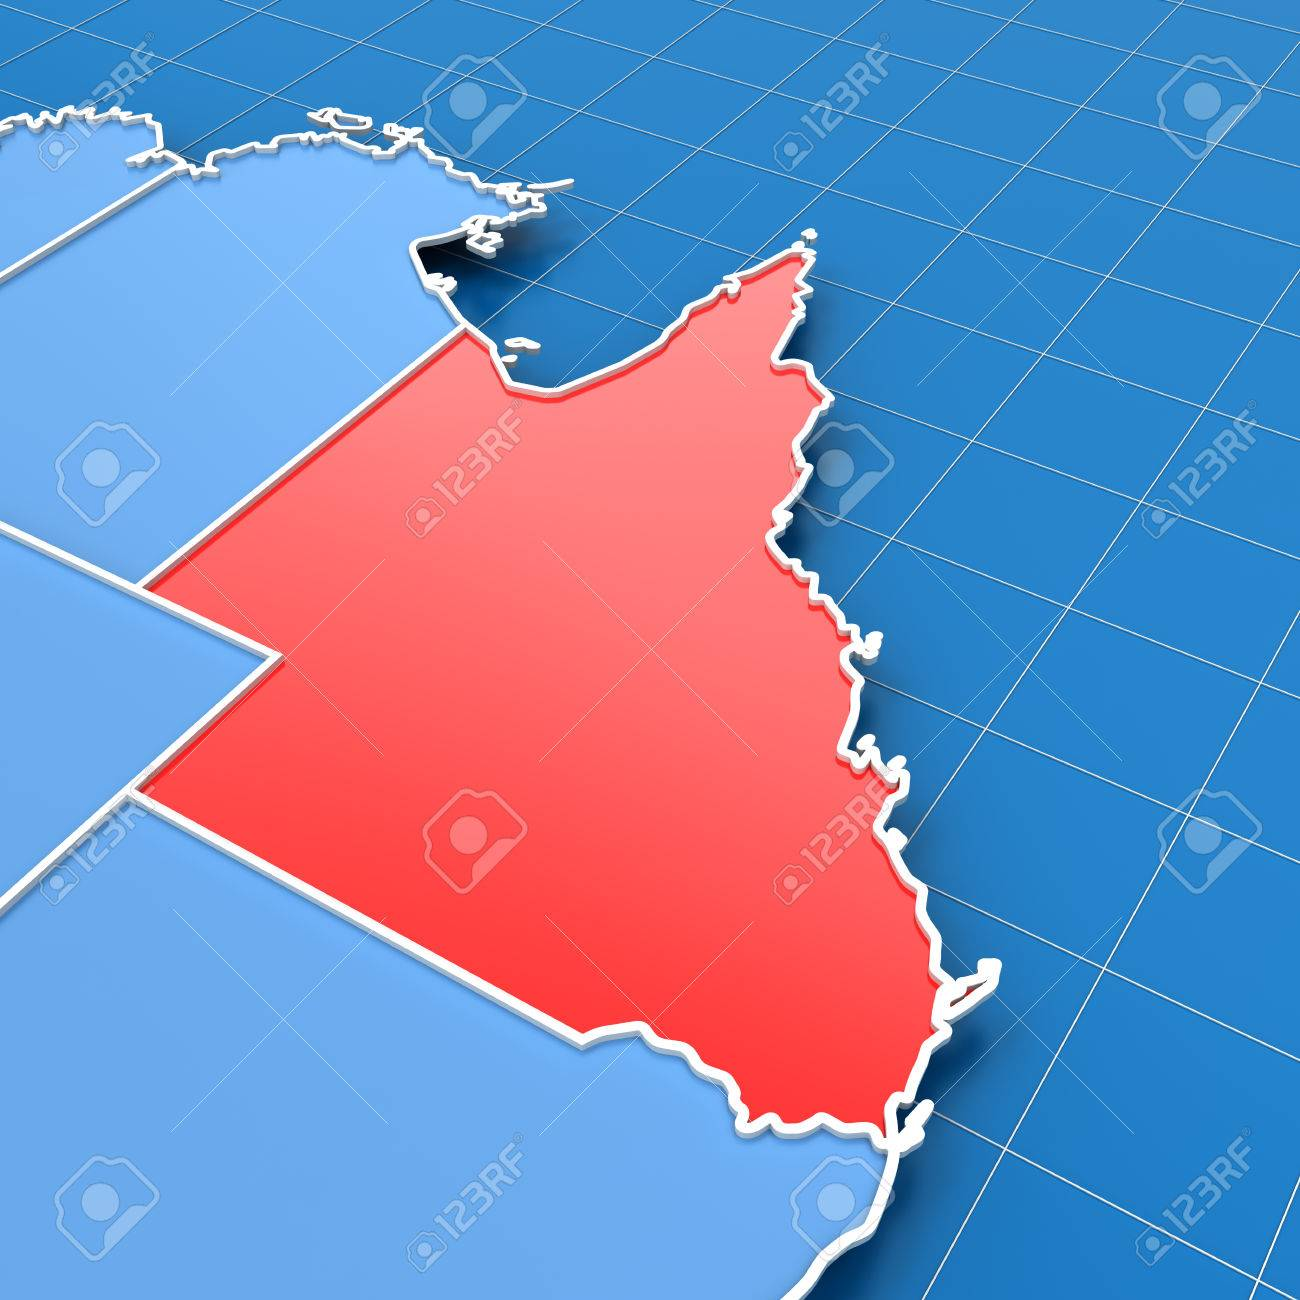 3d render of australia map with queensland highlighted stock photo 36960172